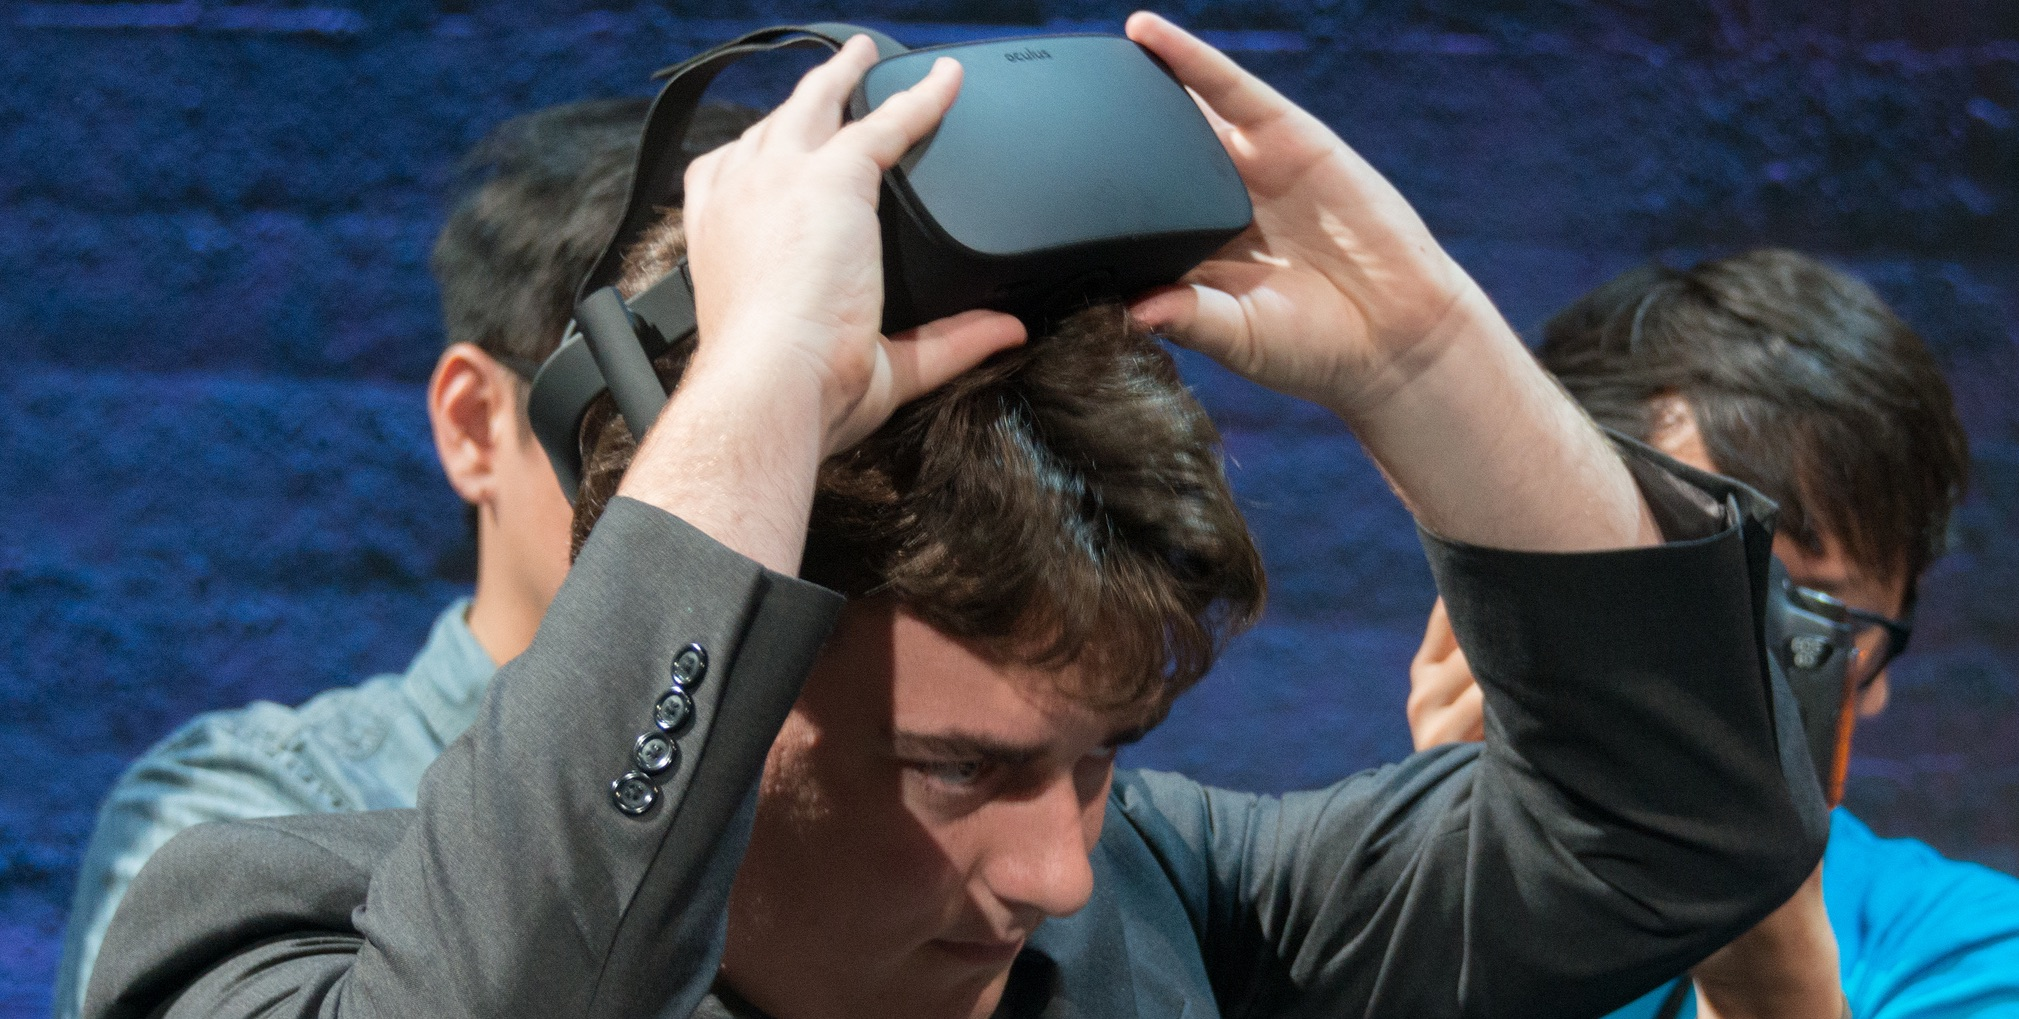 Oculus DRM Kills Hack That Allows Games On Other Headsets (motherboard.vice.com)